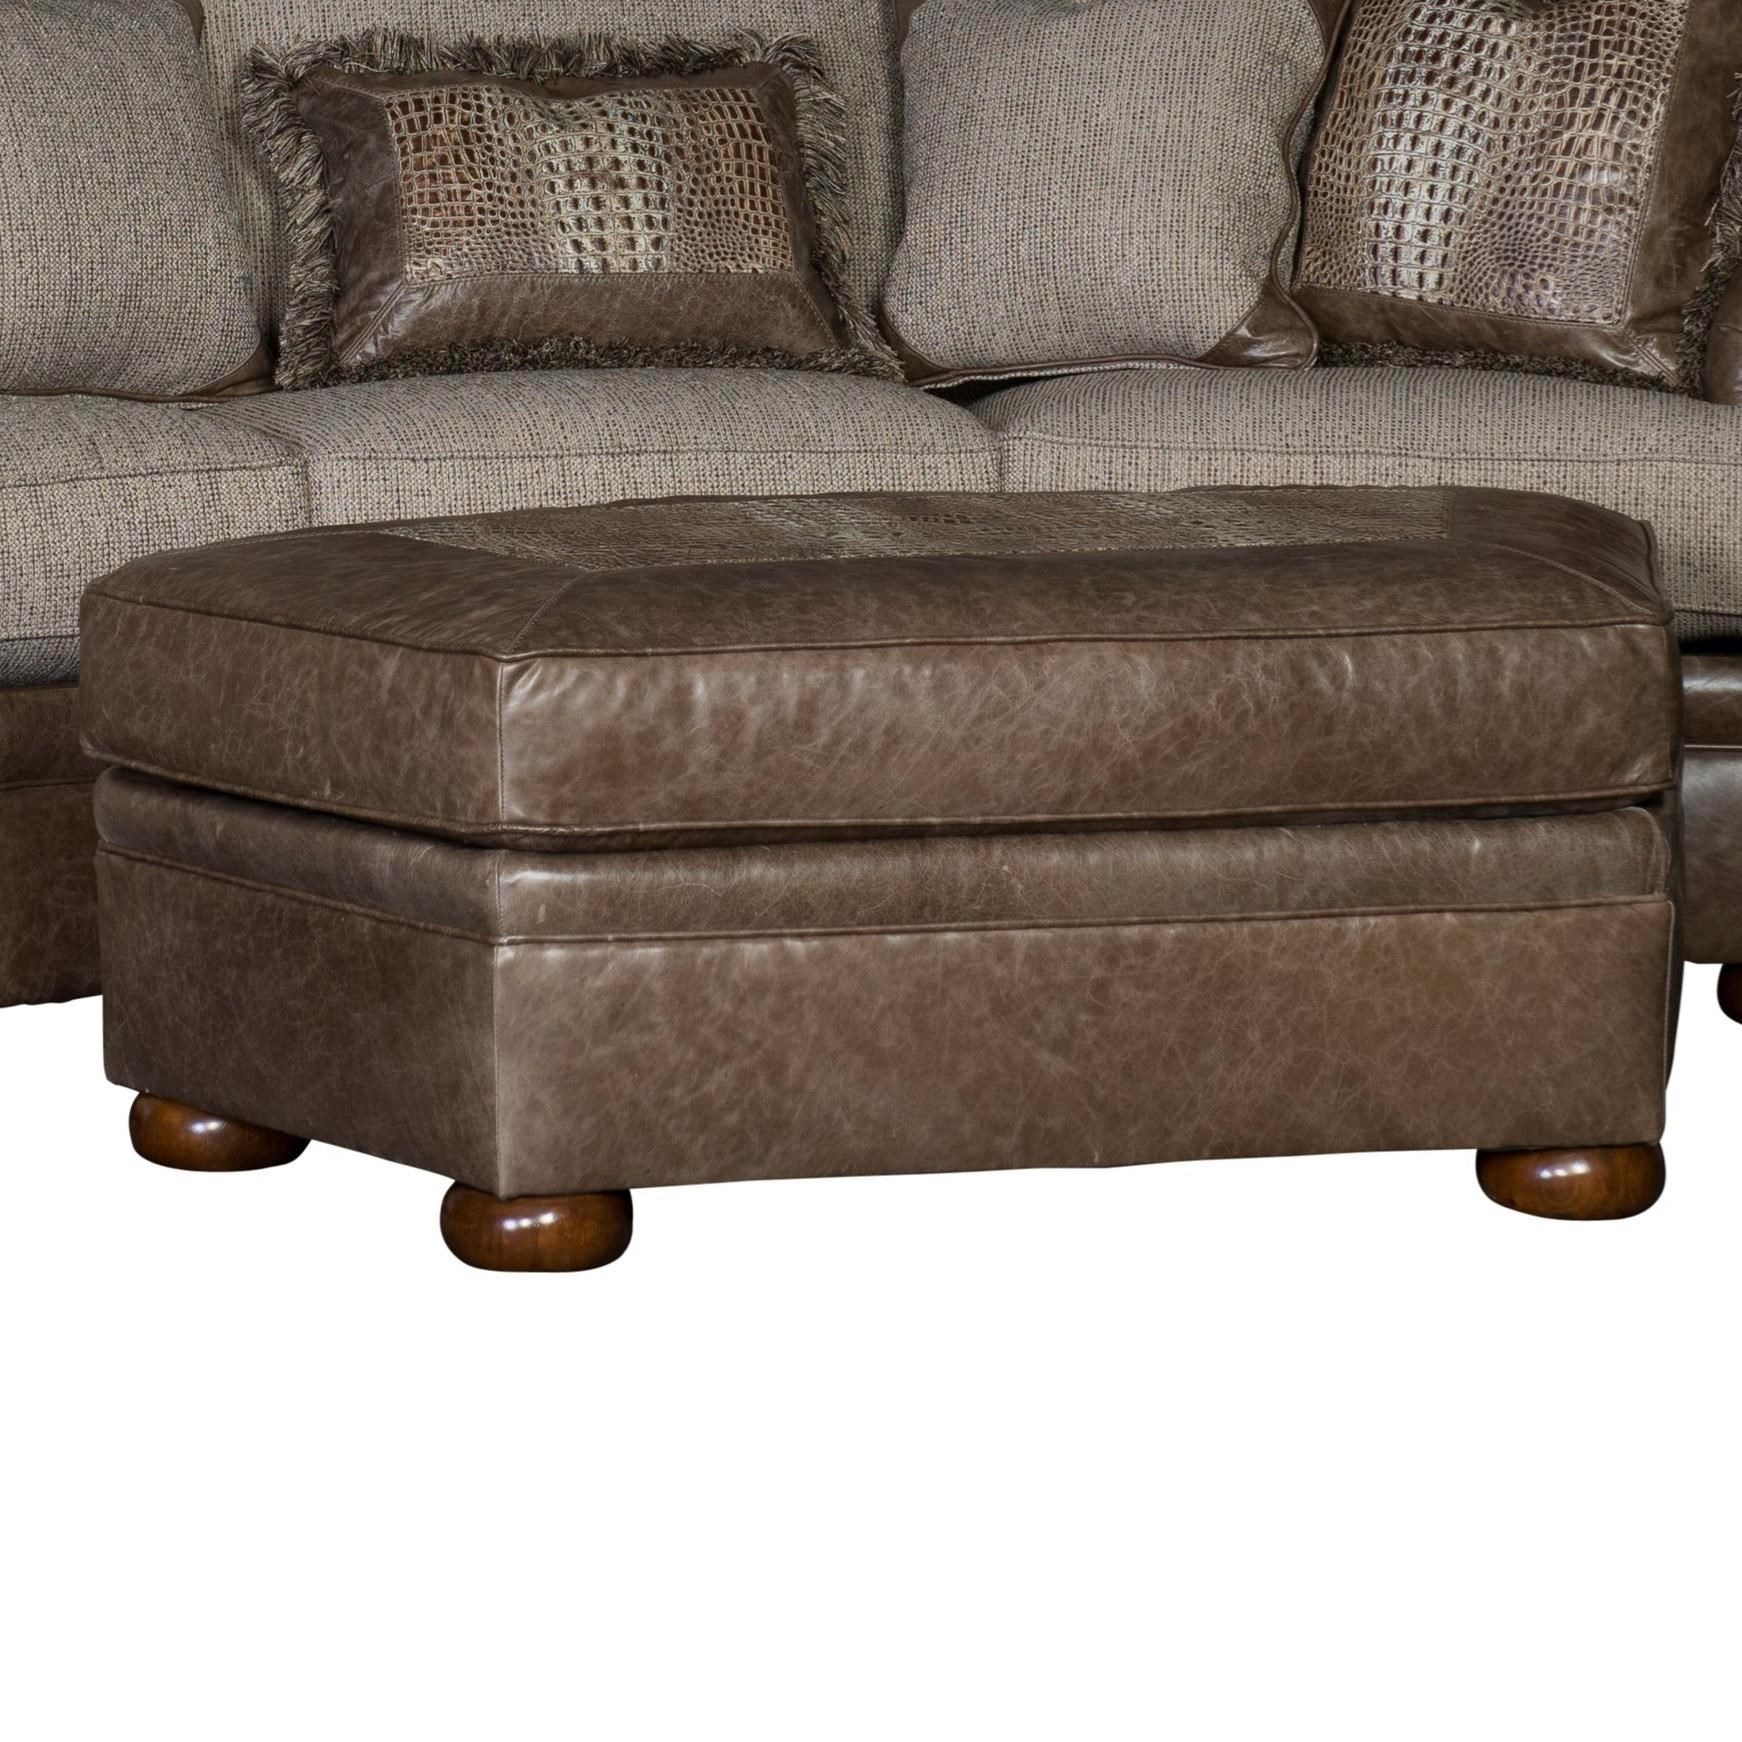 7500 Table Ottoman by Mayo at Wilcox Furniture